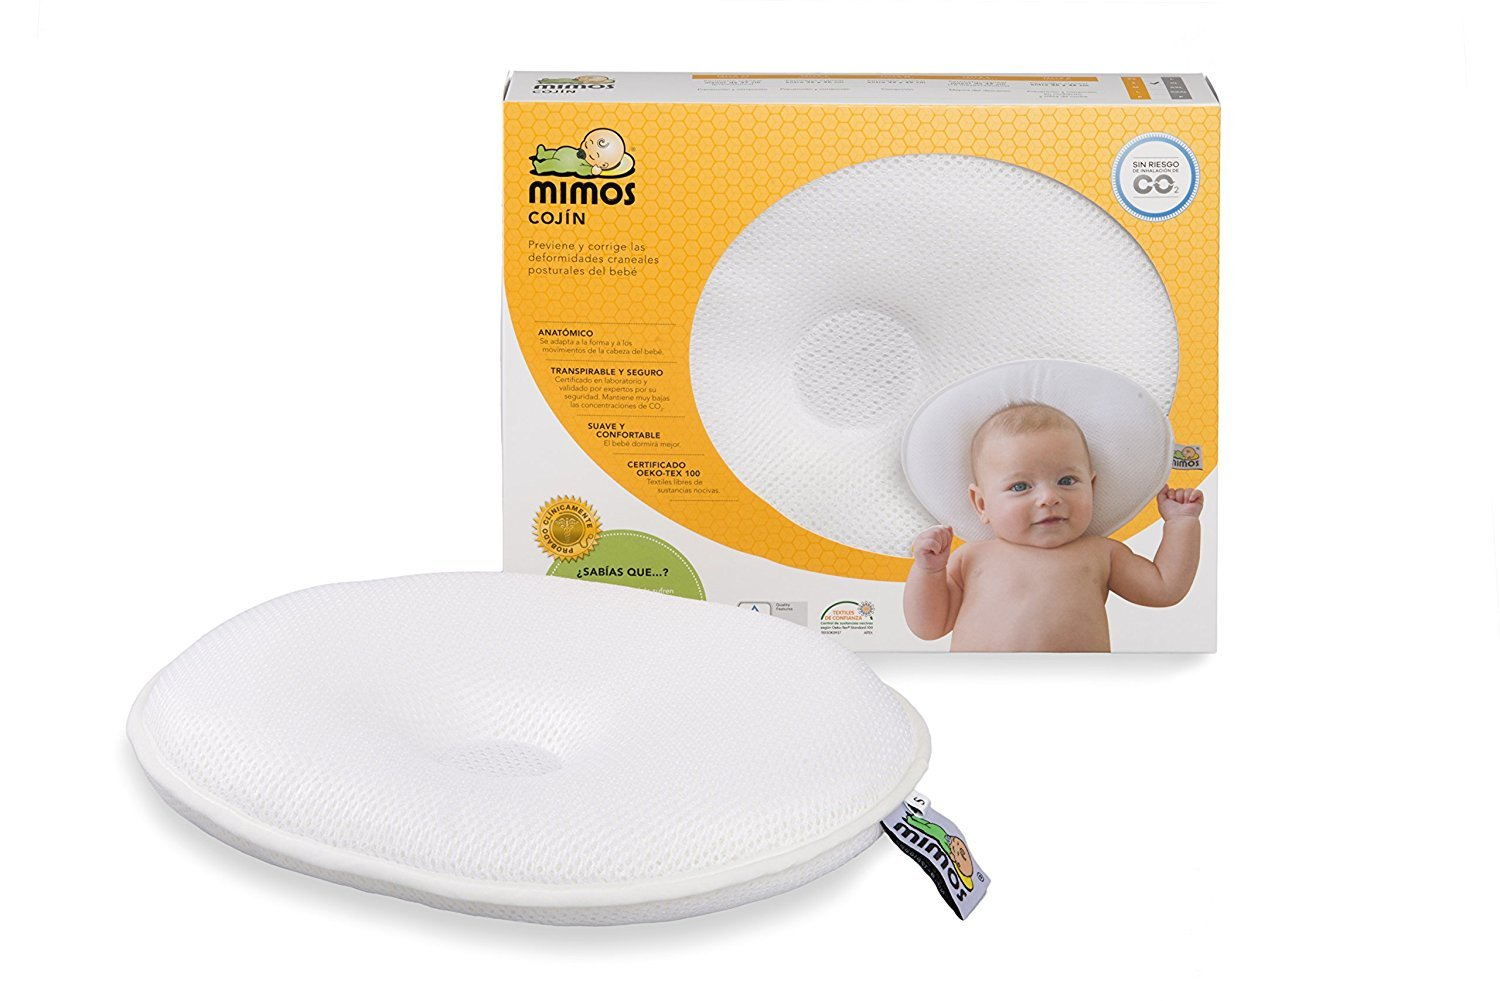 Mimos baby pillow (size-S) - proven effective for baby flat head (Plagiocephaly), scientifically verified airflow safe, head circumference 36 to 46 centimetres (Formerly size-XL)